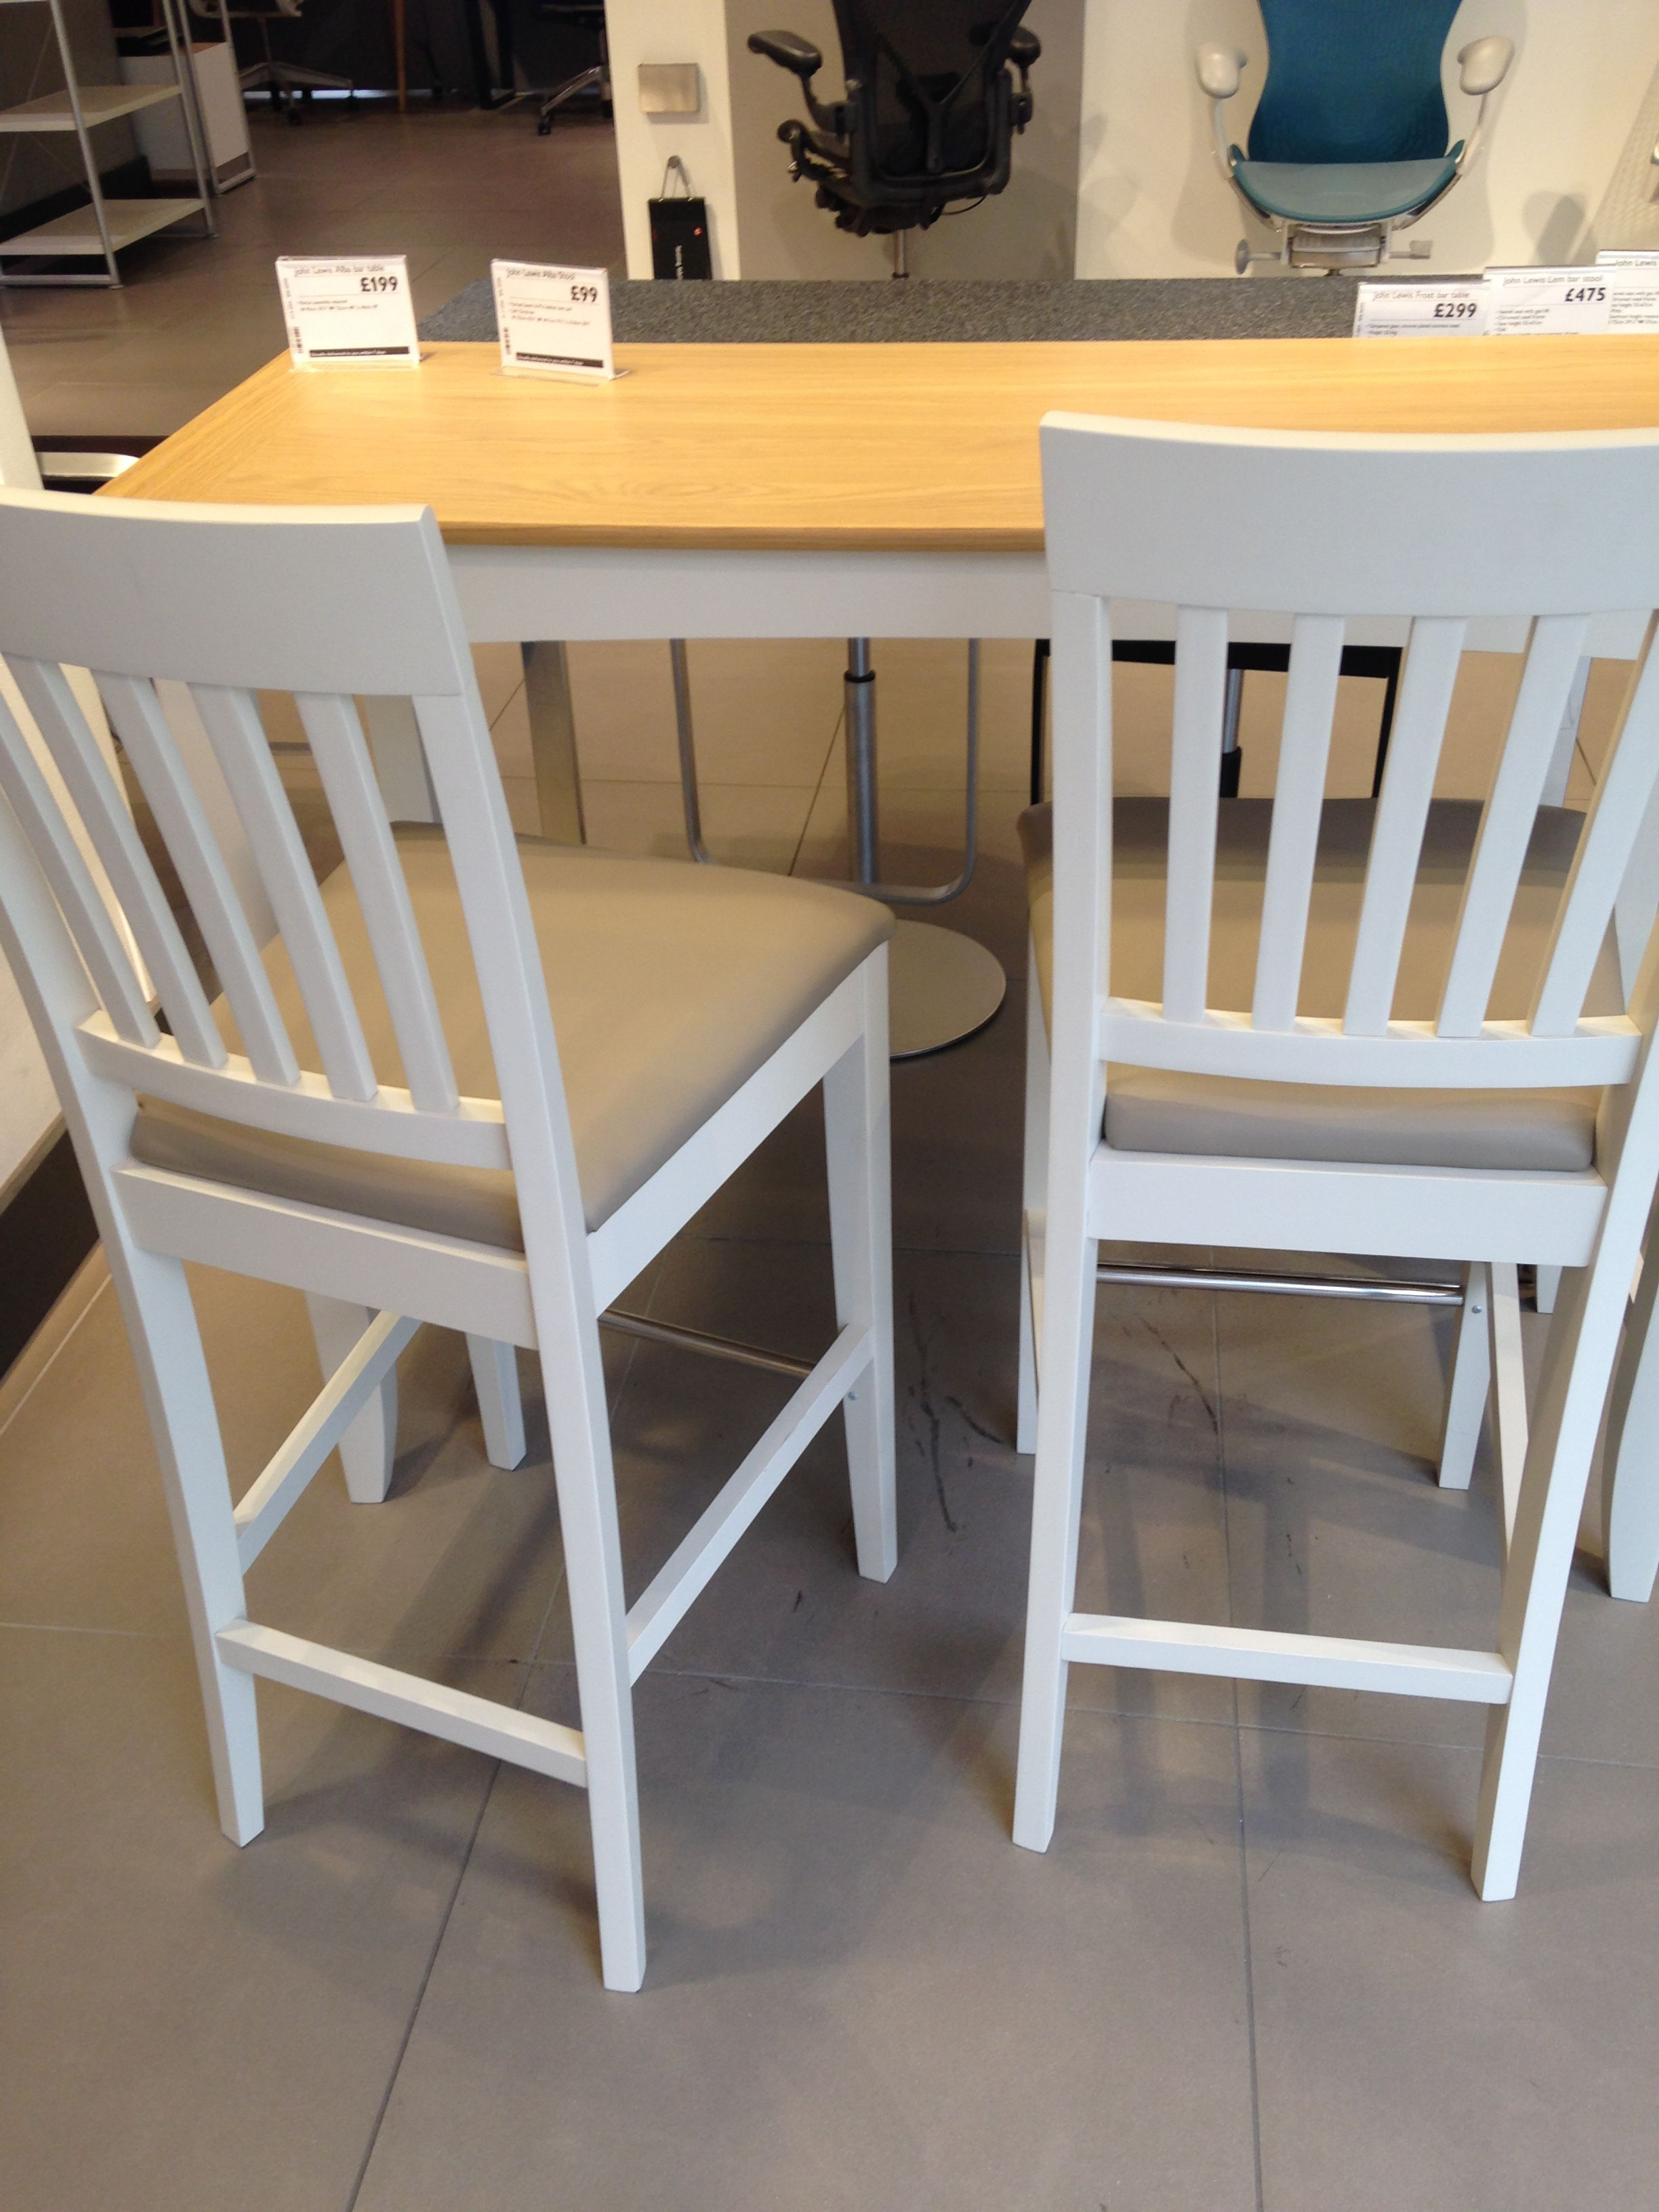 Magnificent John Lewis Alba Bar Stools Stools For Kitchen Island Gmtry Best Dining Table And Chair Ideas Images Gmtryco